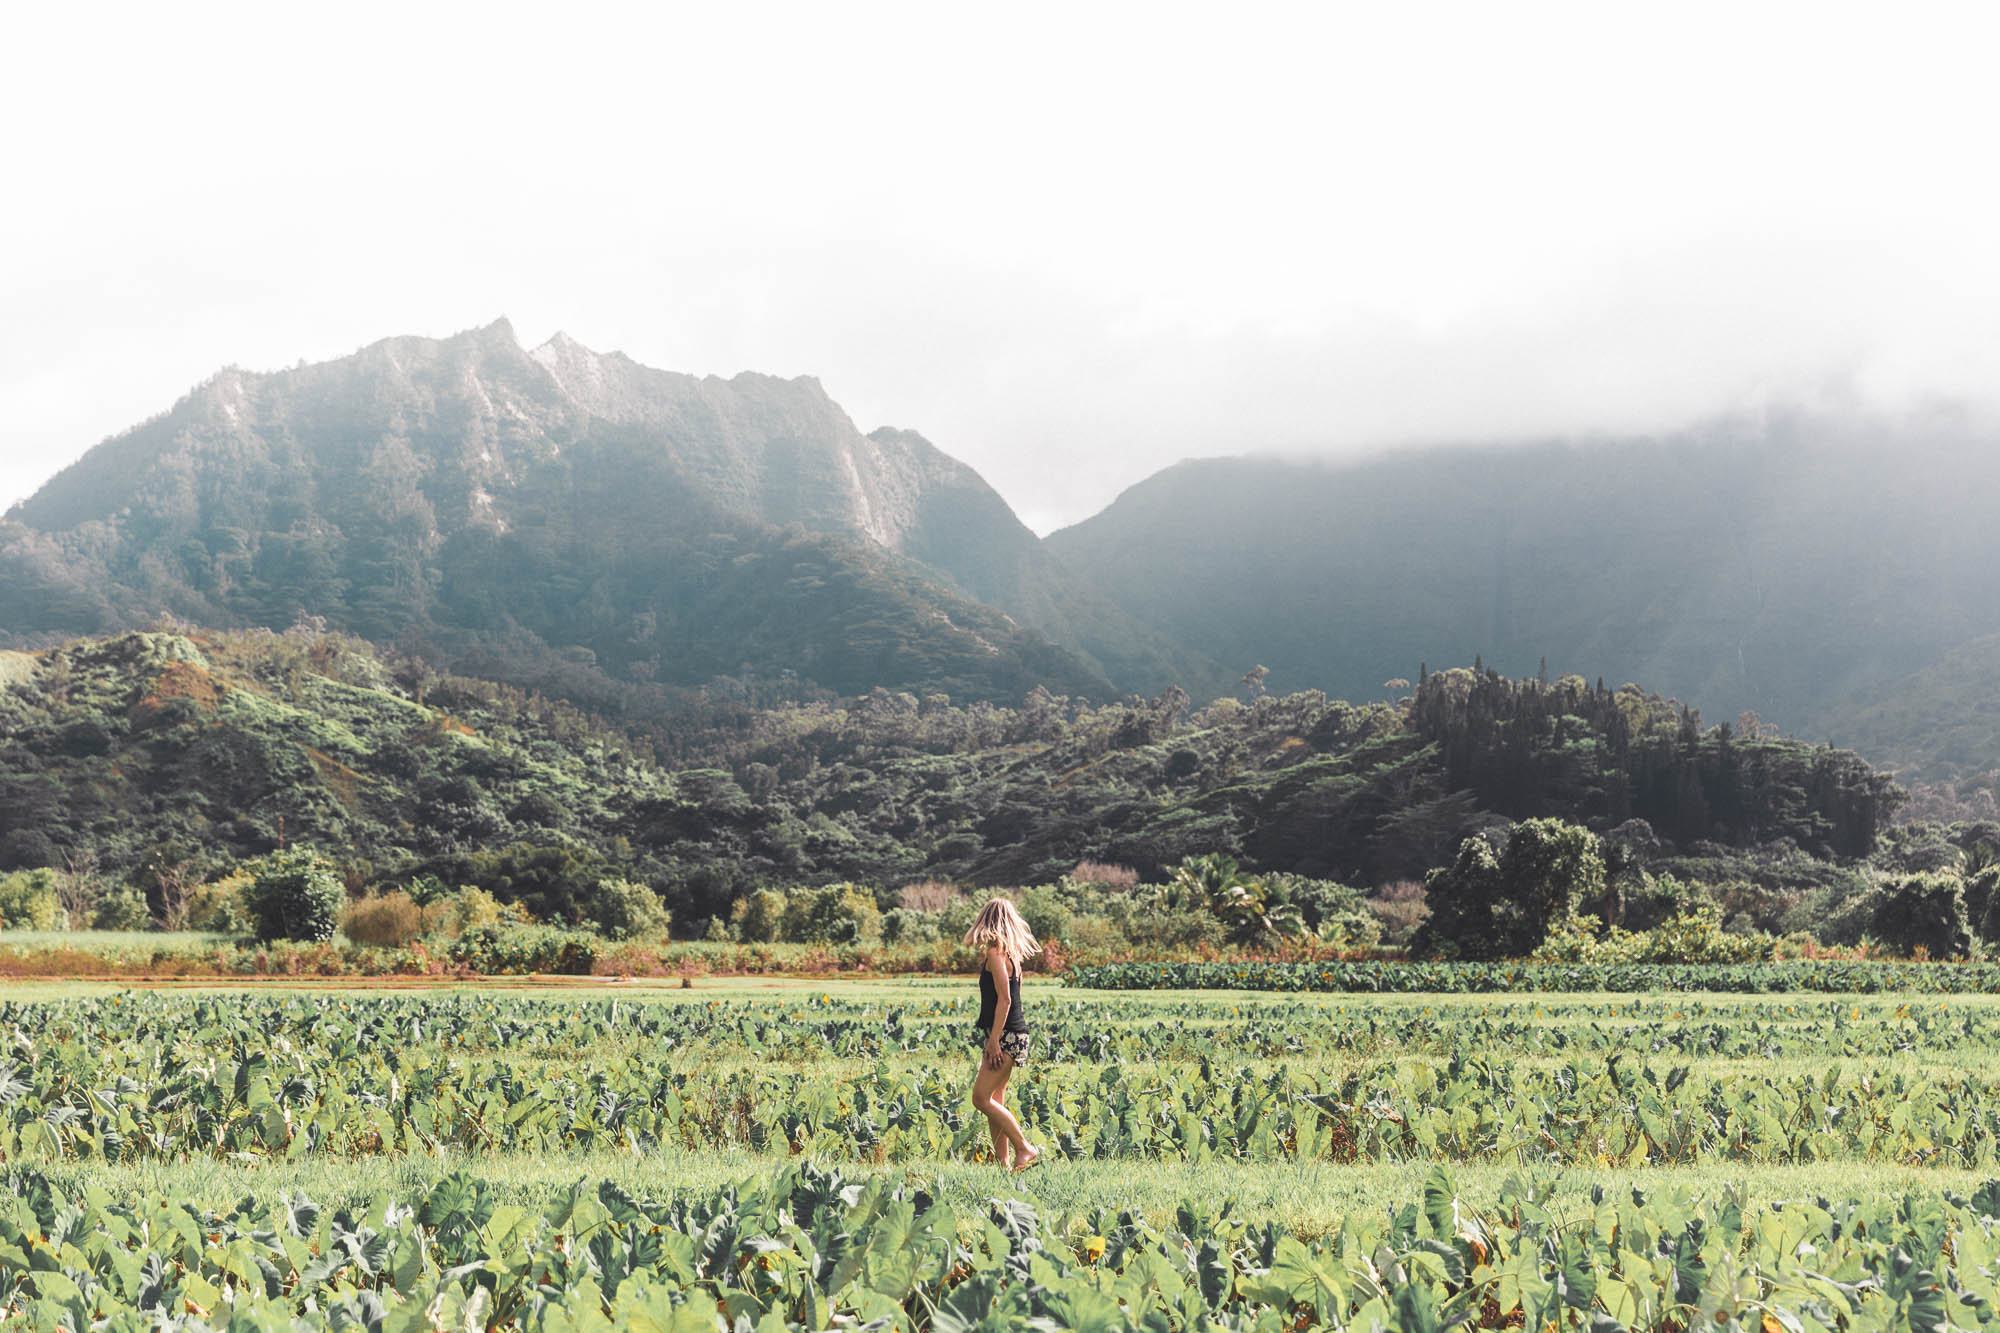 Taro Fields in Hanalei Hawaii Landscape Kauai Travel Guide via Find Us Lost